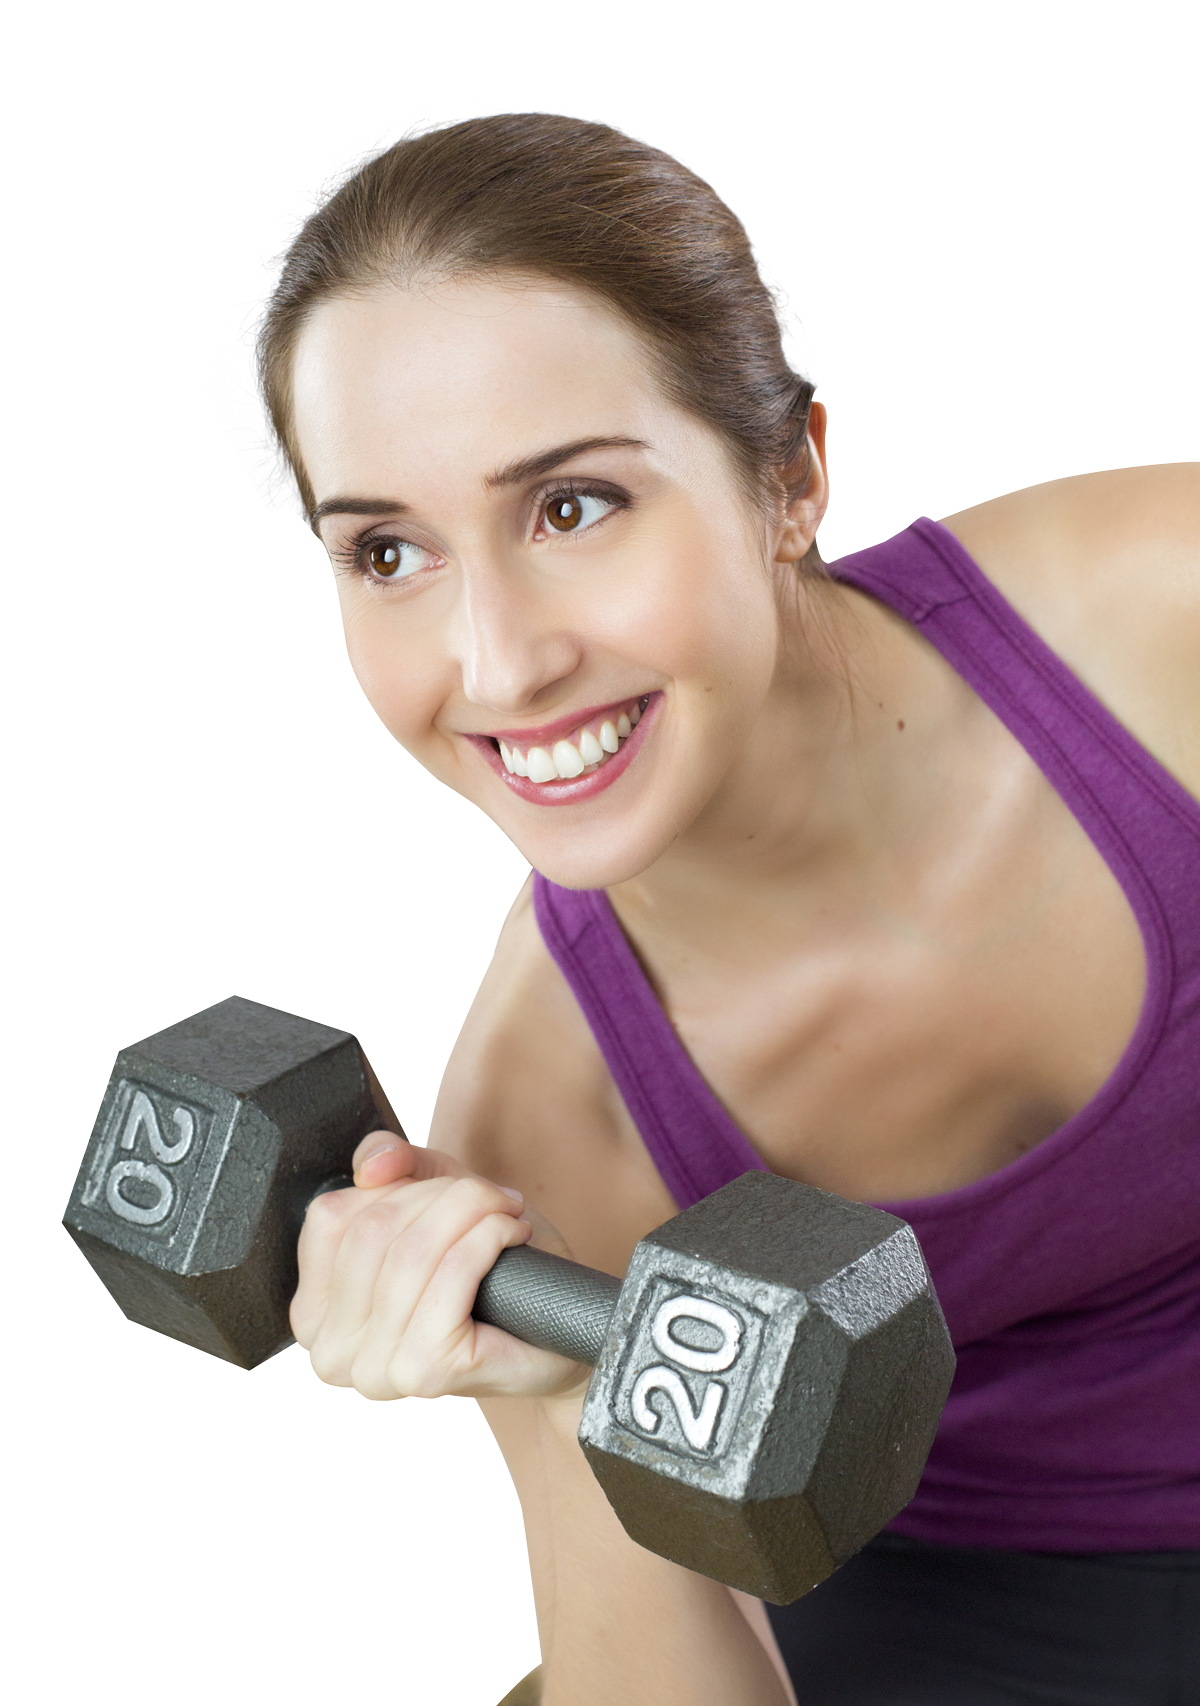 Woman exercising PNG Image